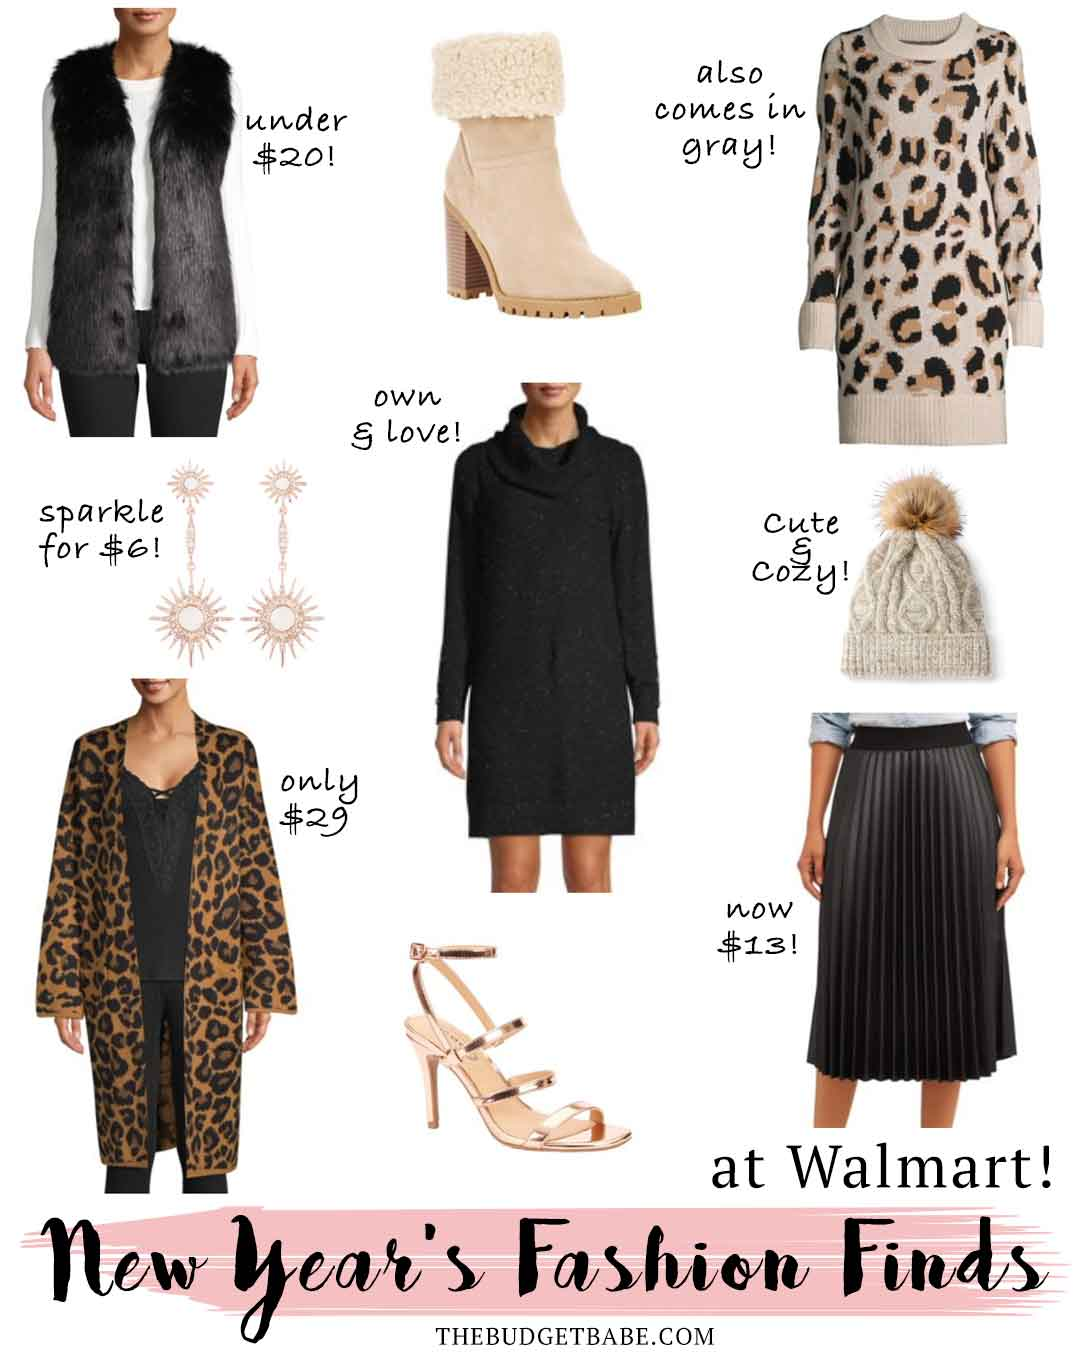 New Year's Fashion finds on a budget with Walmart! #ad